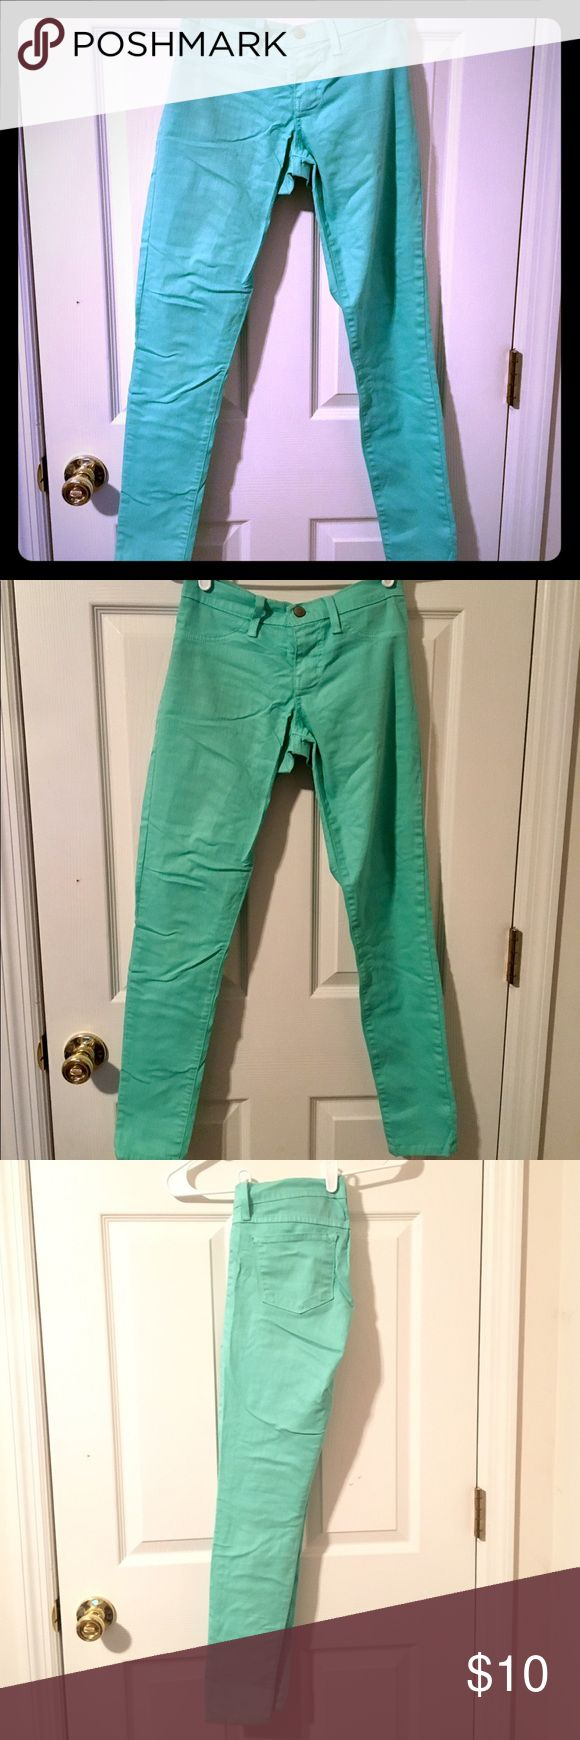 Flying Monkey Mint Green Jeans Flying Monkey Mint Green Skinny Jeans. Jegging type feel, very comfortable. 2 back pockets. 74% Cotton, 24% Polyester, 2% Spandex. Machine washable. Body Central Jeans Skinny